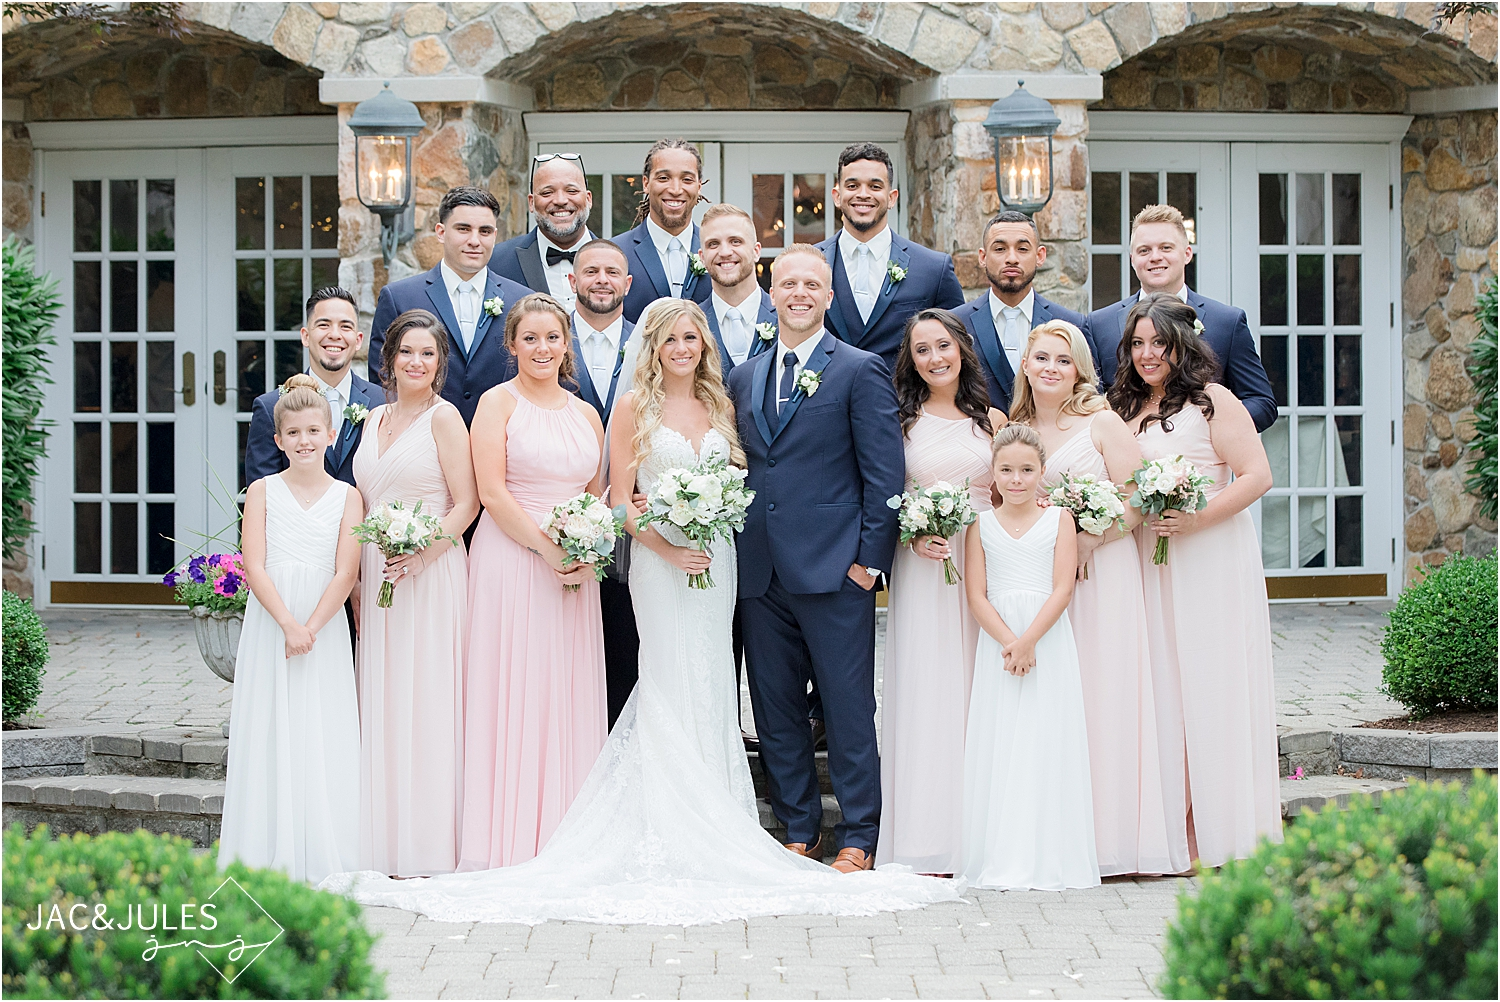 bridal party photo in the Olde Mill Inn courtyard